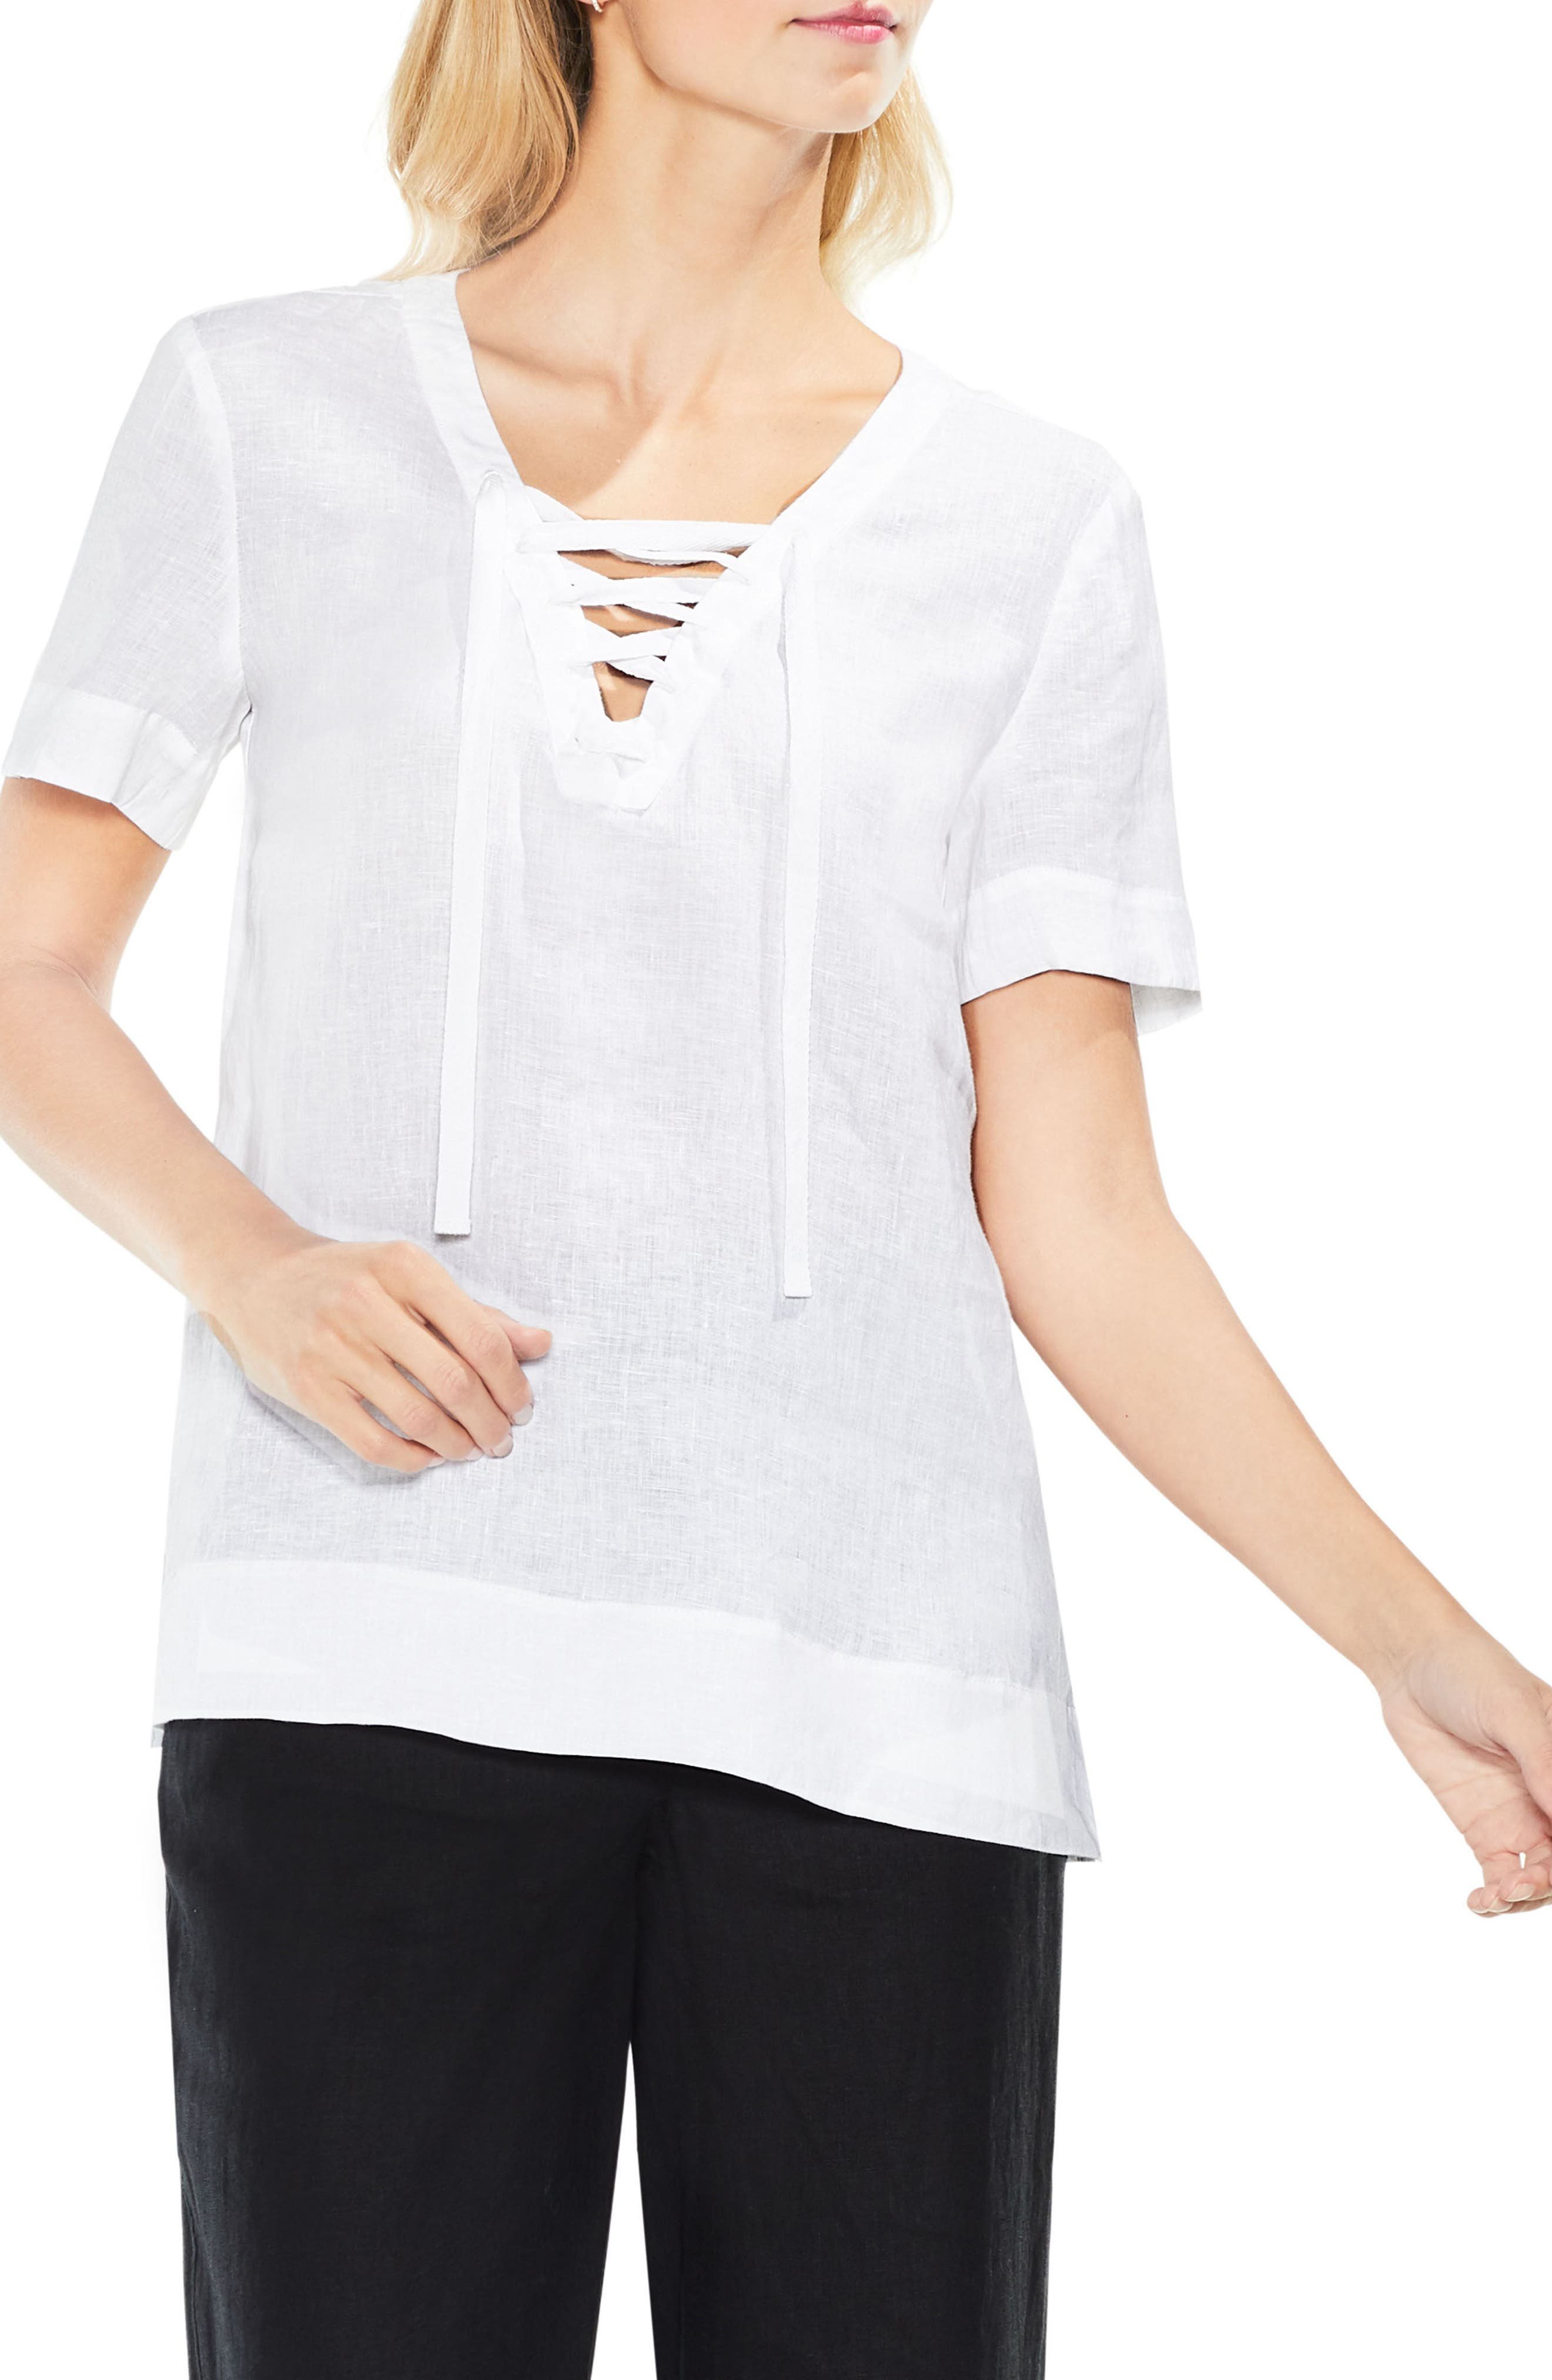 Main Image - Two by Vince Camuto Lace-Up Linen Blouse